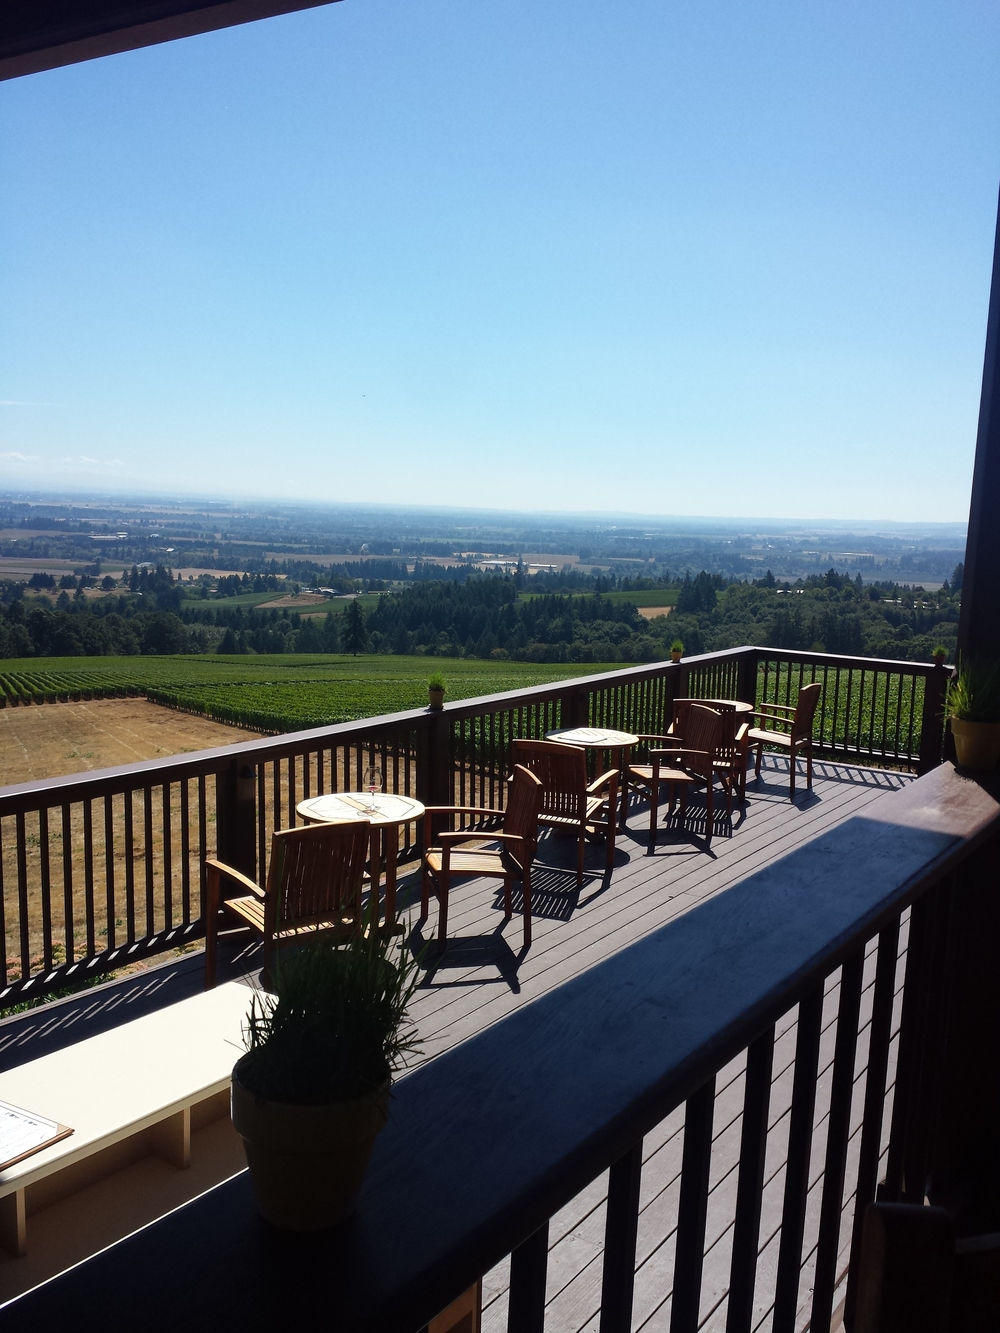 The patio at Domaine Drouhin made for a lovely day of staring into the distance.